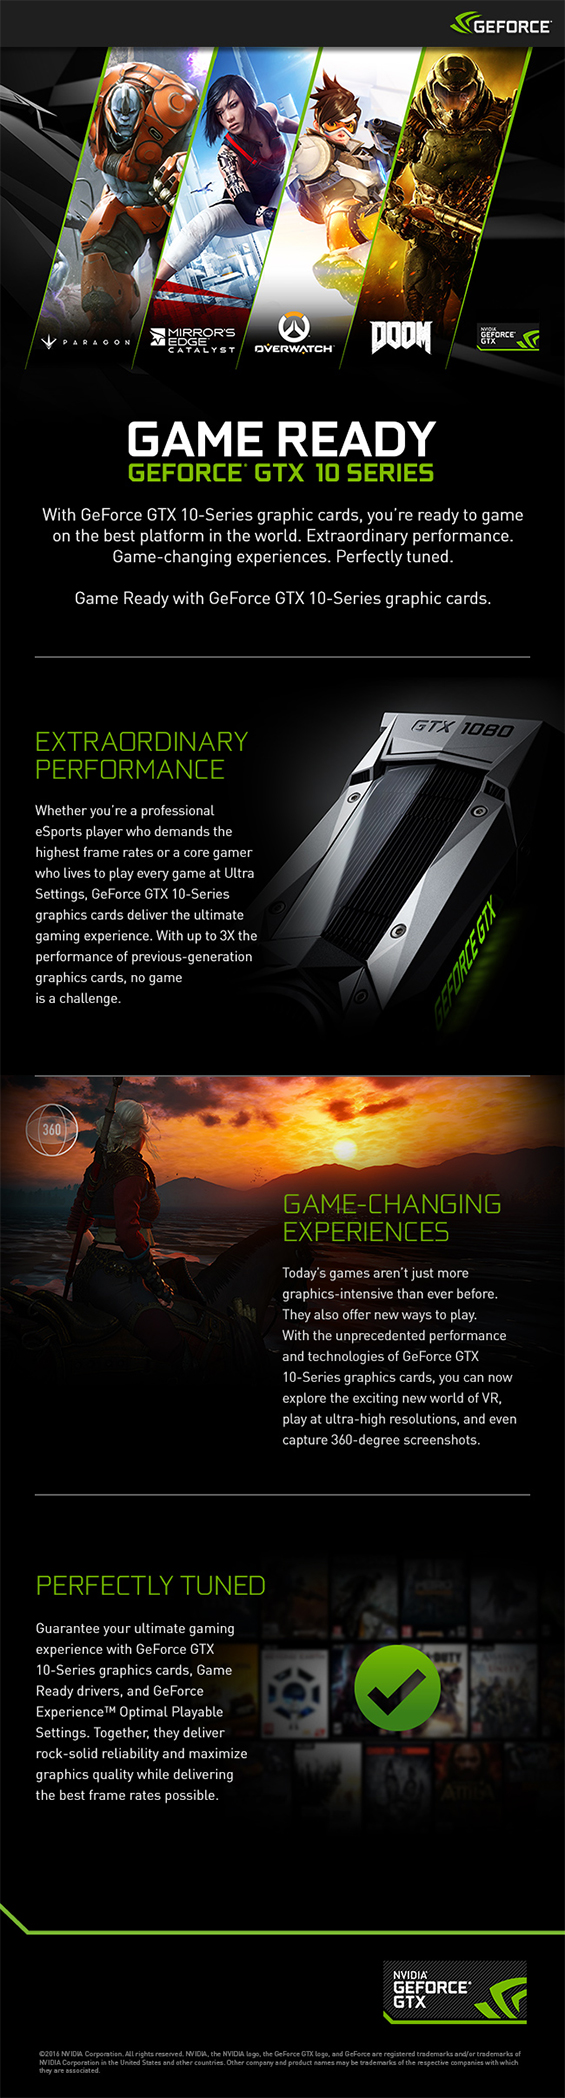 The Nvidia GTX 1080 and 1070 information picture